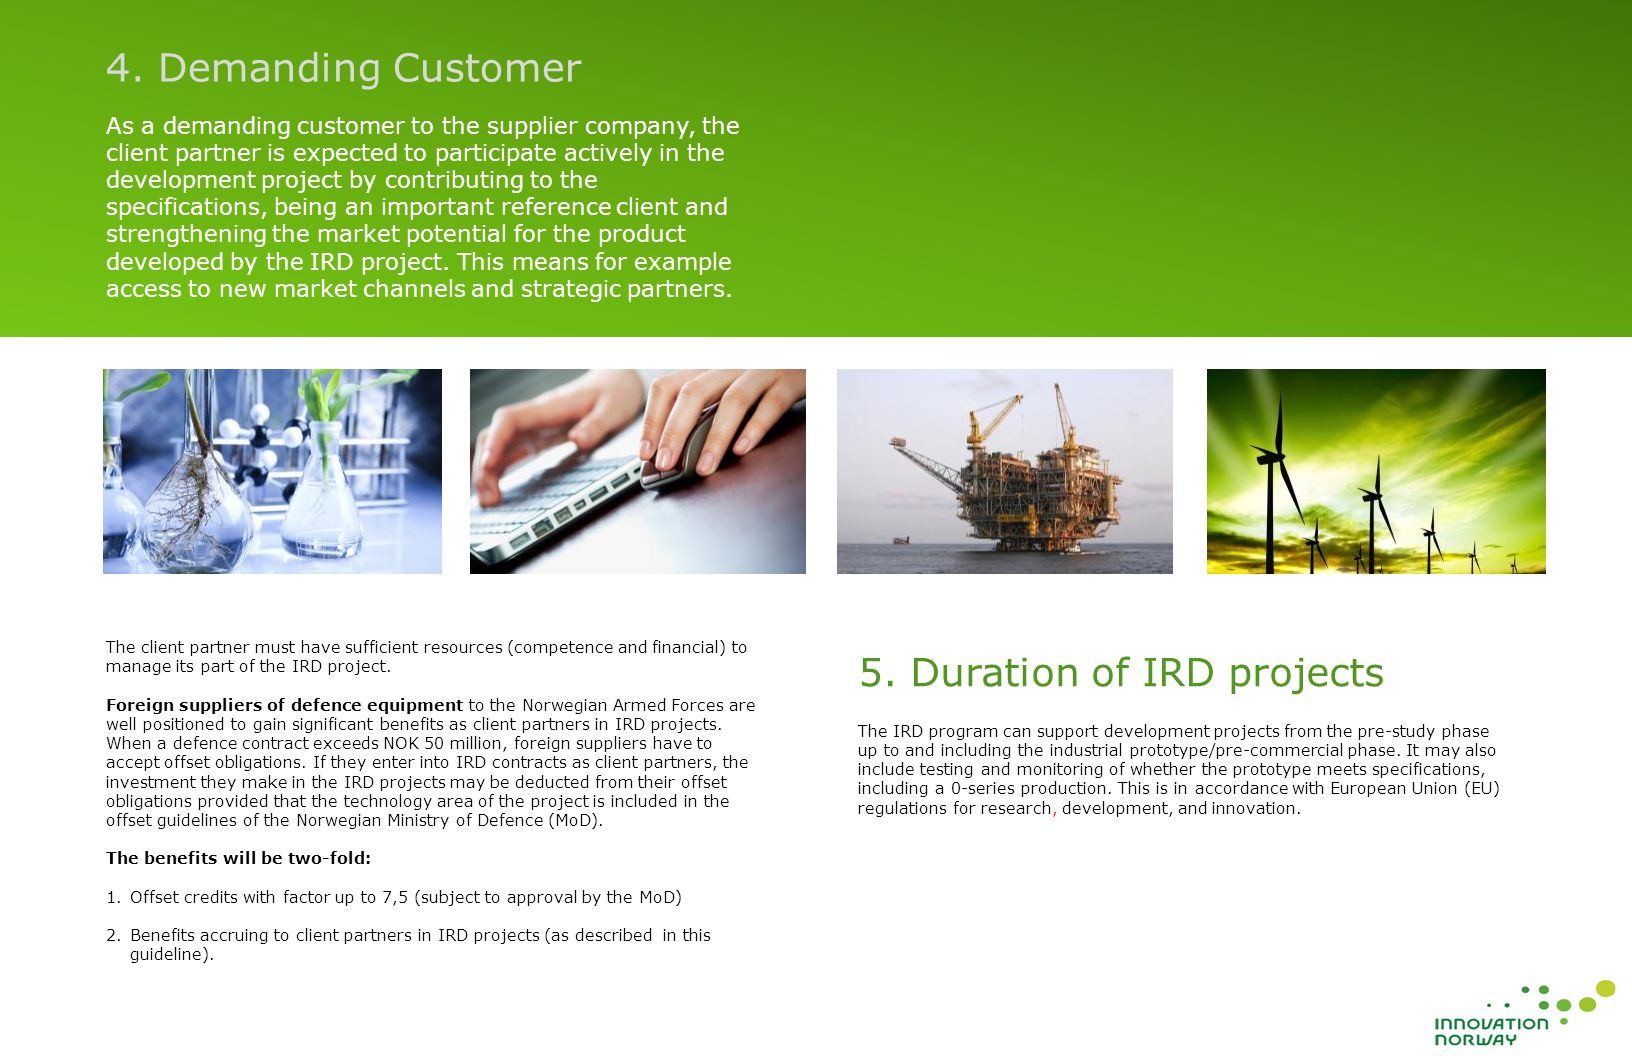 As a demanding customer to the supplier company, the client partner is expected to participate actively in the development project by contributing to the specifications, being an important reference client and strengthening the market potential for the product developed by the IRD project.